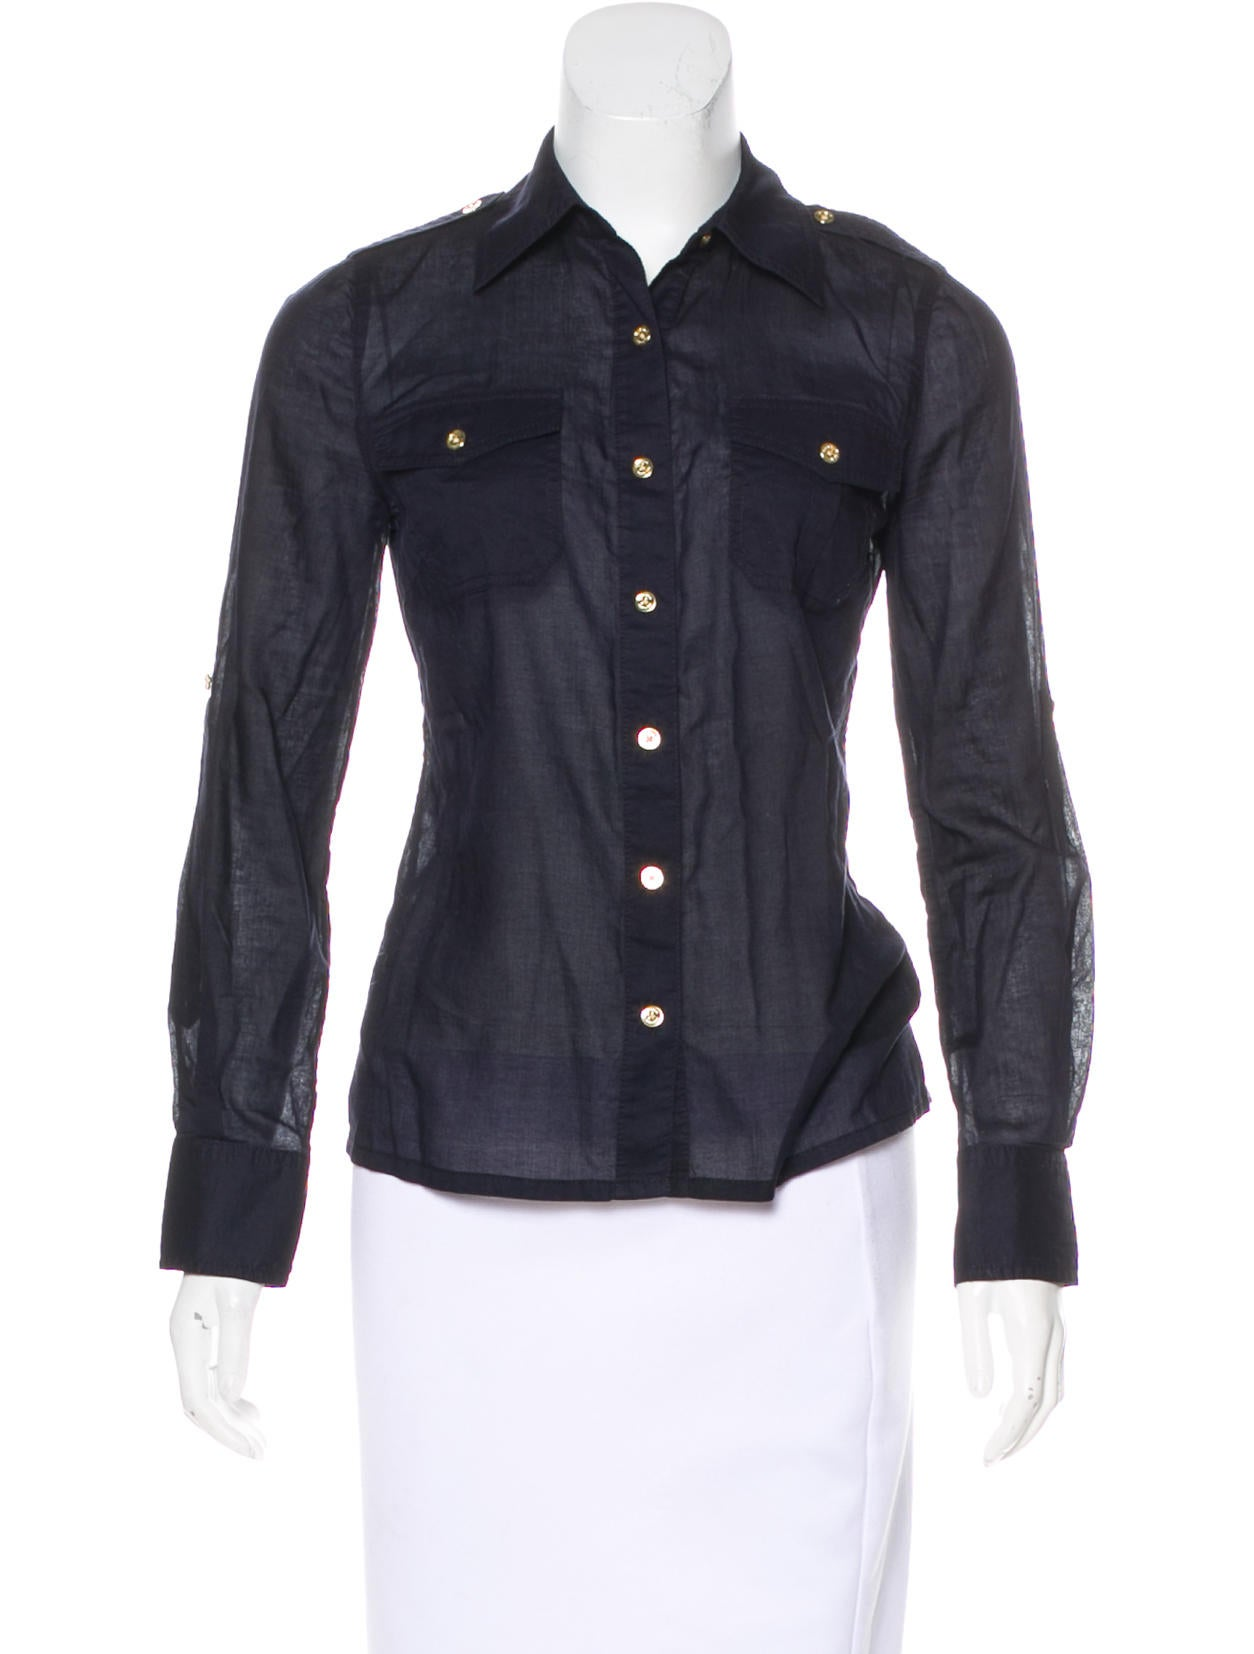 With Credit Card Cheap Price Tory Burch Long Sleeve Button-Up Top Discount Pre Order Sast Cheap Price UeHDkt